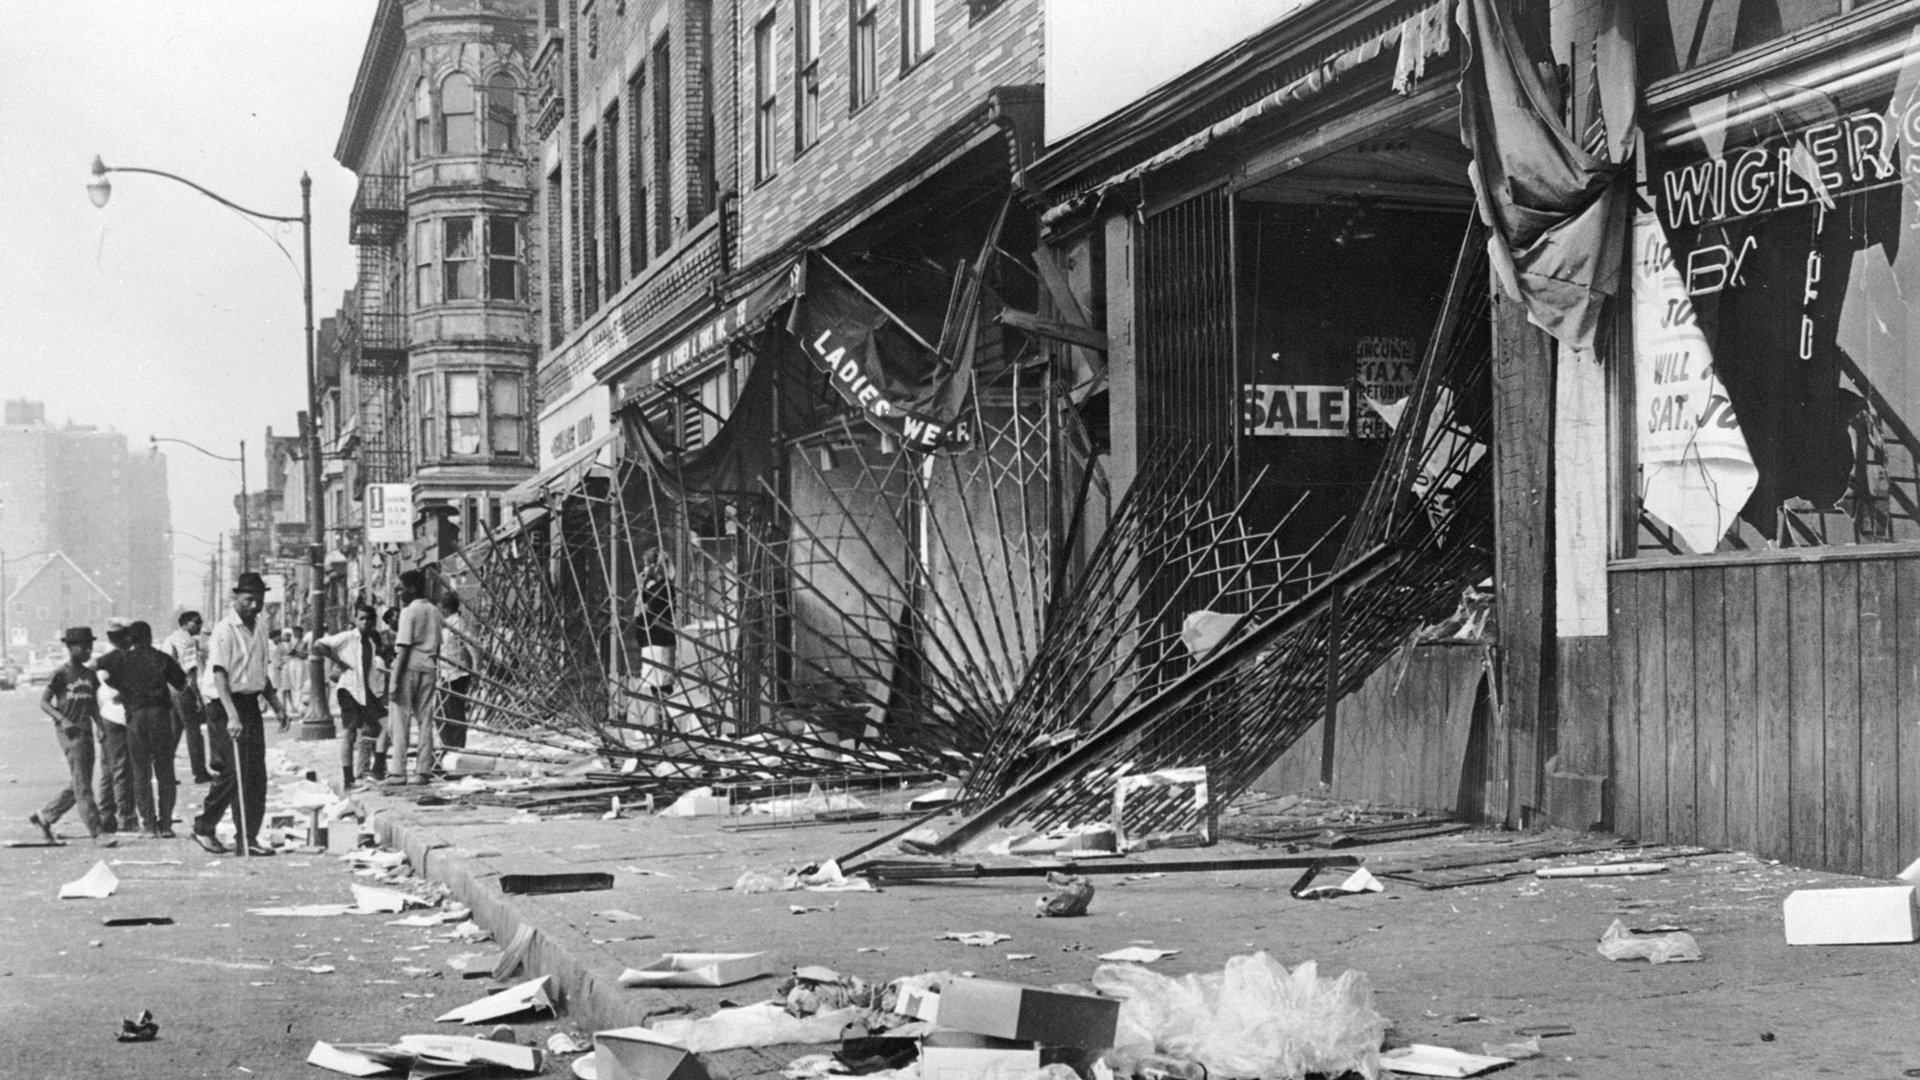 The riots in Detroit brought fires and looting. Three Lions / Getty